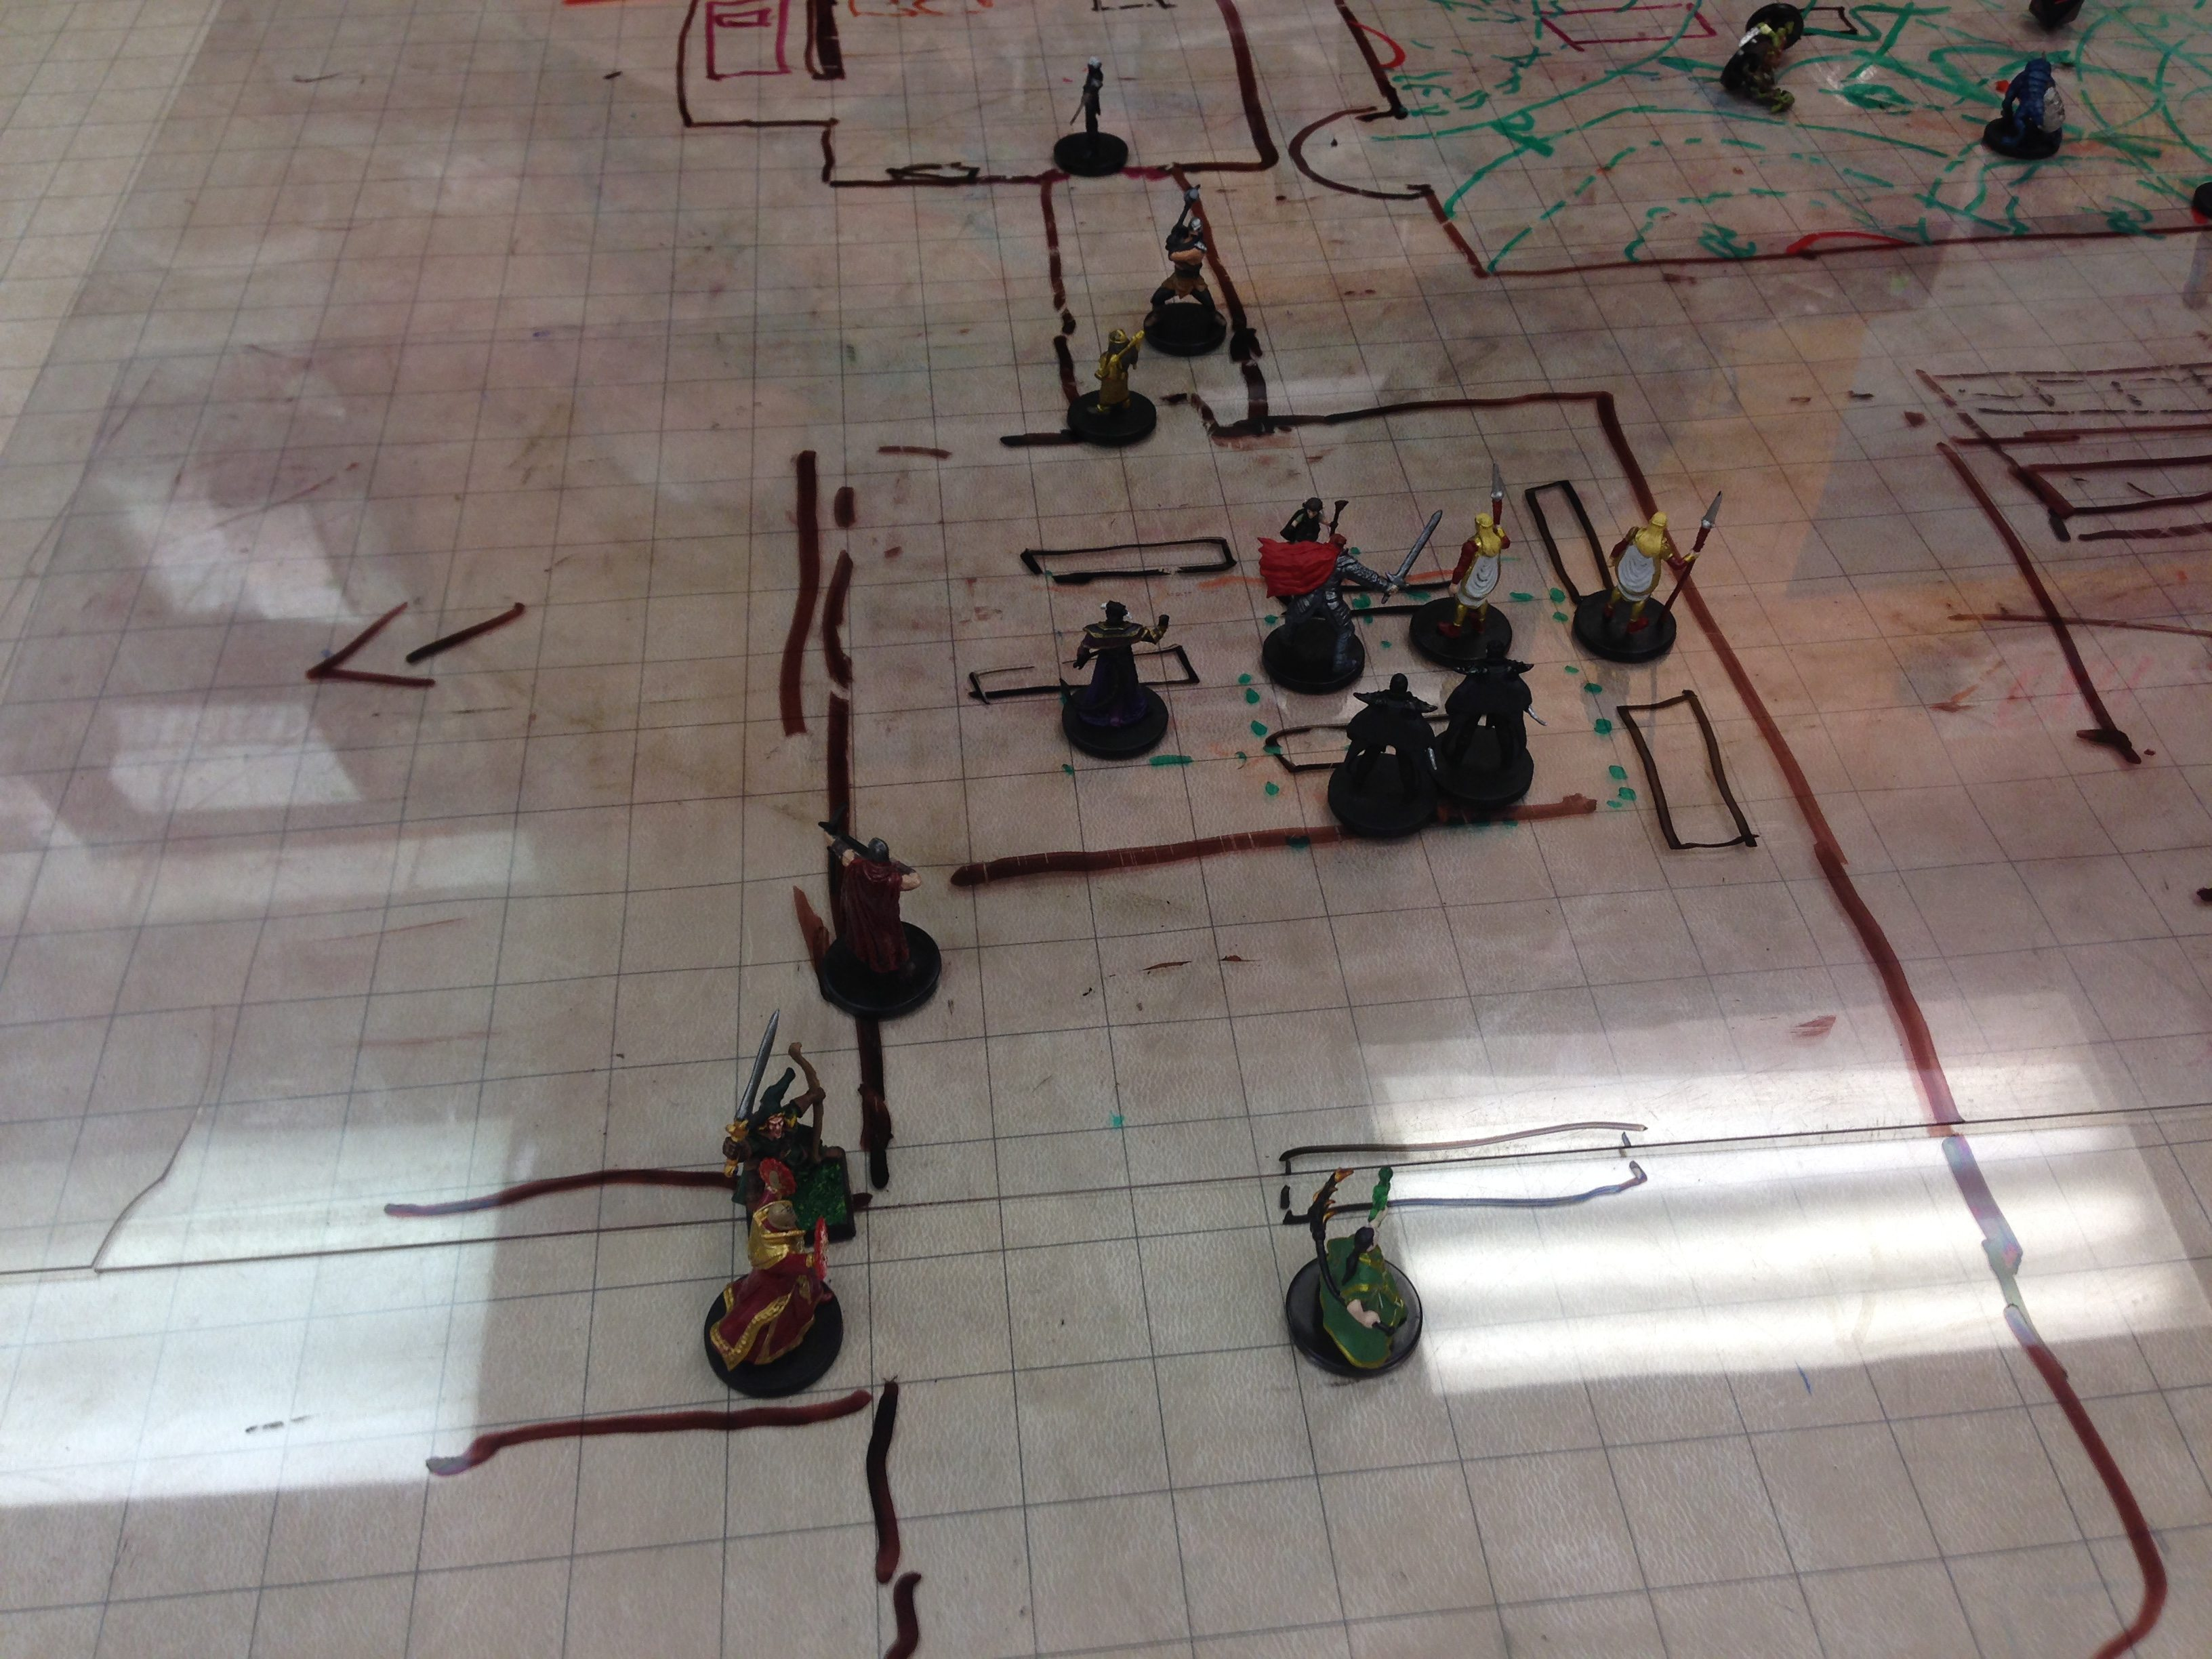 Trouble... lots of it. Six enemies plus the female evil cleric.